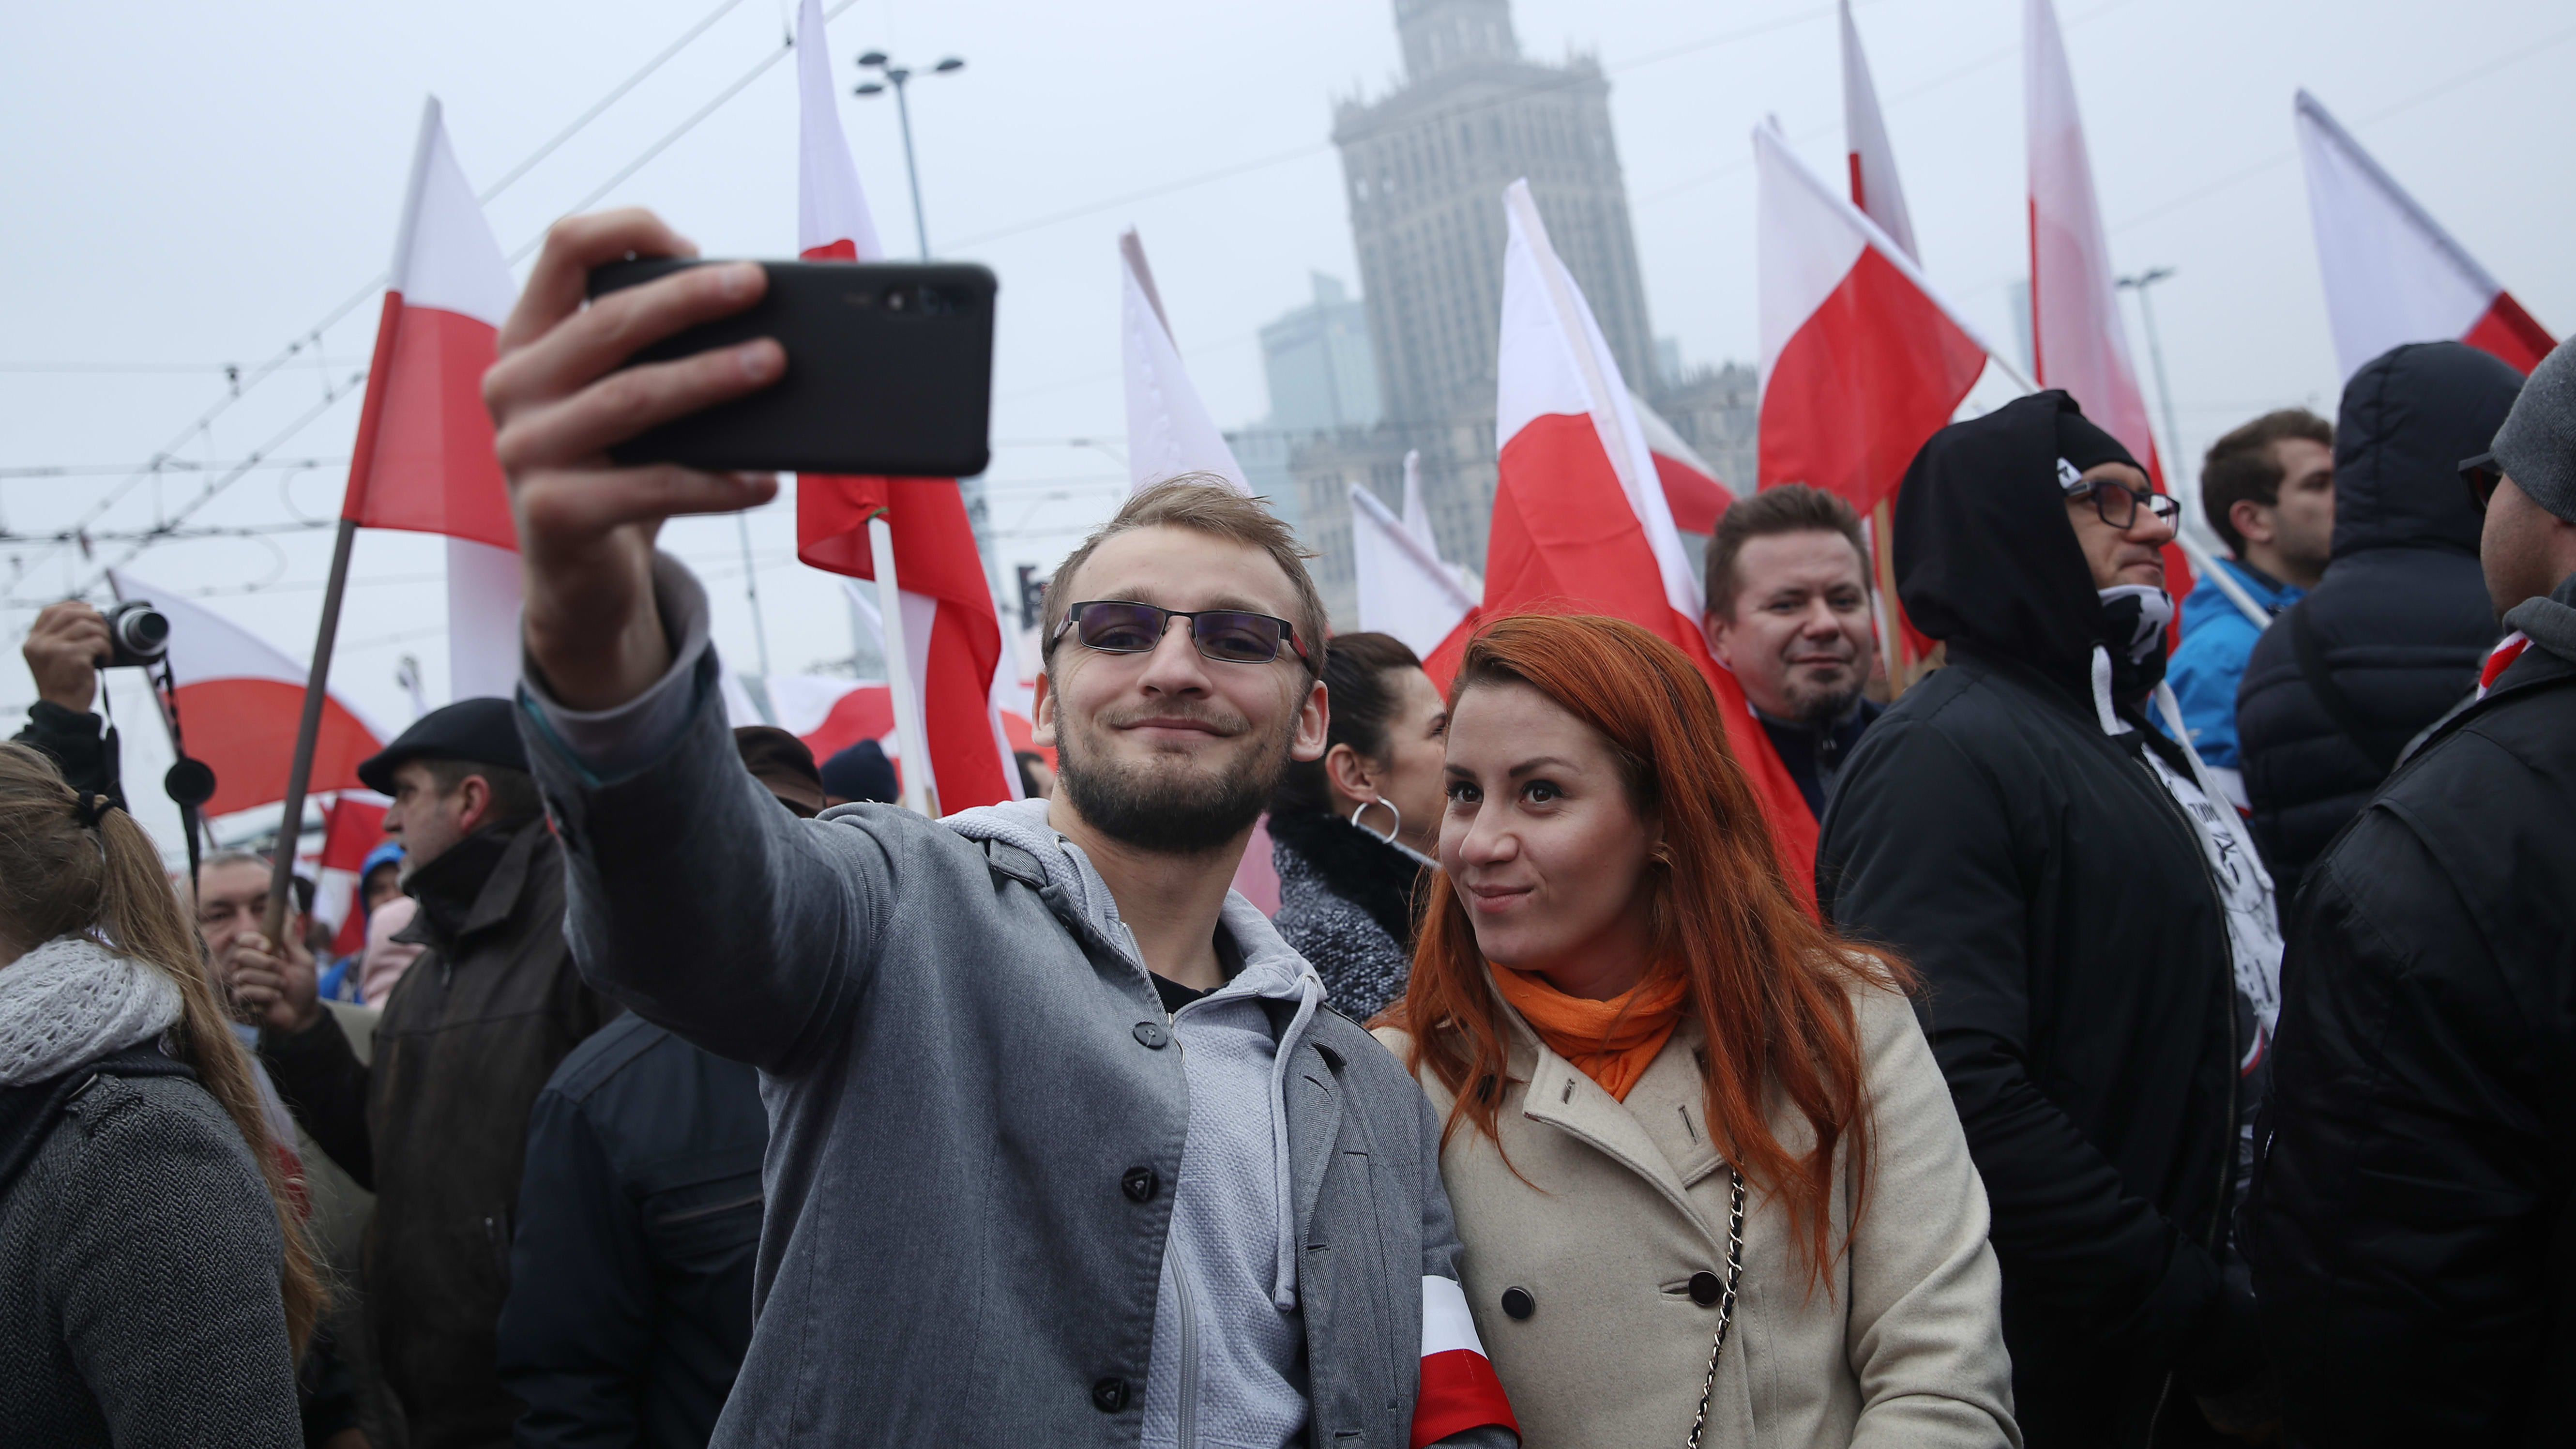 WARSAW, POLAND - NOVEMBER 11: A couple shoots a selfie among people bearing Polish flags prior to the planned March of Independence during events to mark the 100th anniversary of the reinstatement of Polish independence on November 11, 2018 in Warsaw, Poland. Events are taking place throughout the day in the Polish capital today to celebrate the anniversary. The mayor of Warsaw sought to ban the March of Independence, which is at least partially organized by the far-right National Radical Camp, though a court ruled the march may take place.   (Photo by Sean Gallup/Getty Images)